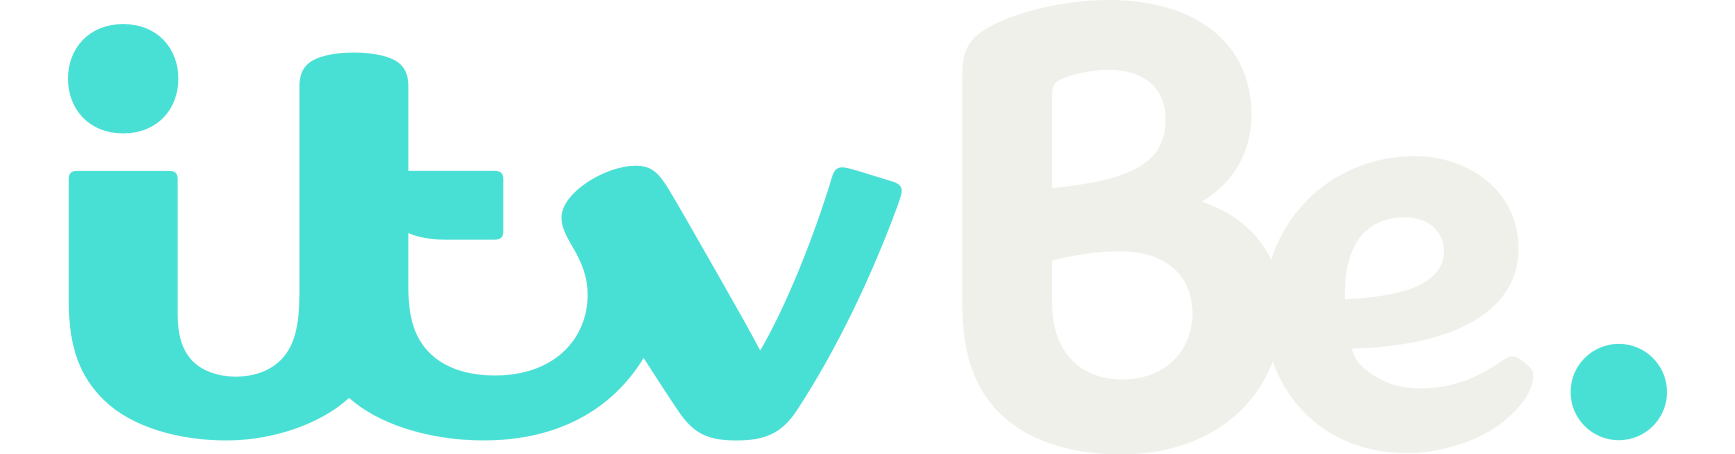 Logo_Turquoise_02.png